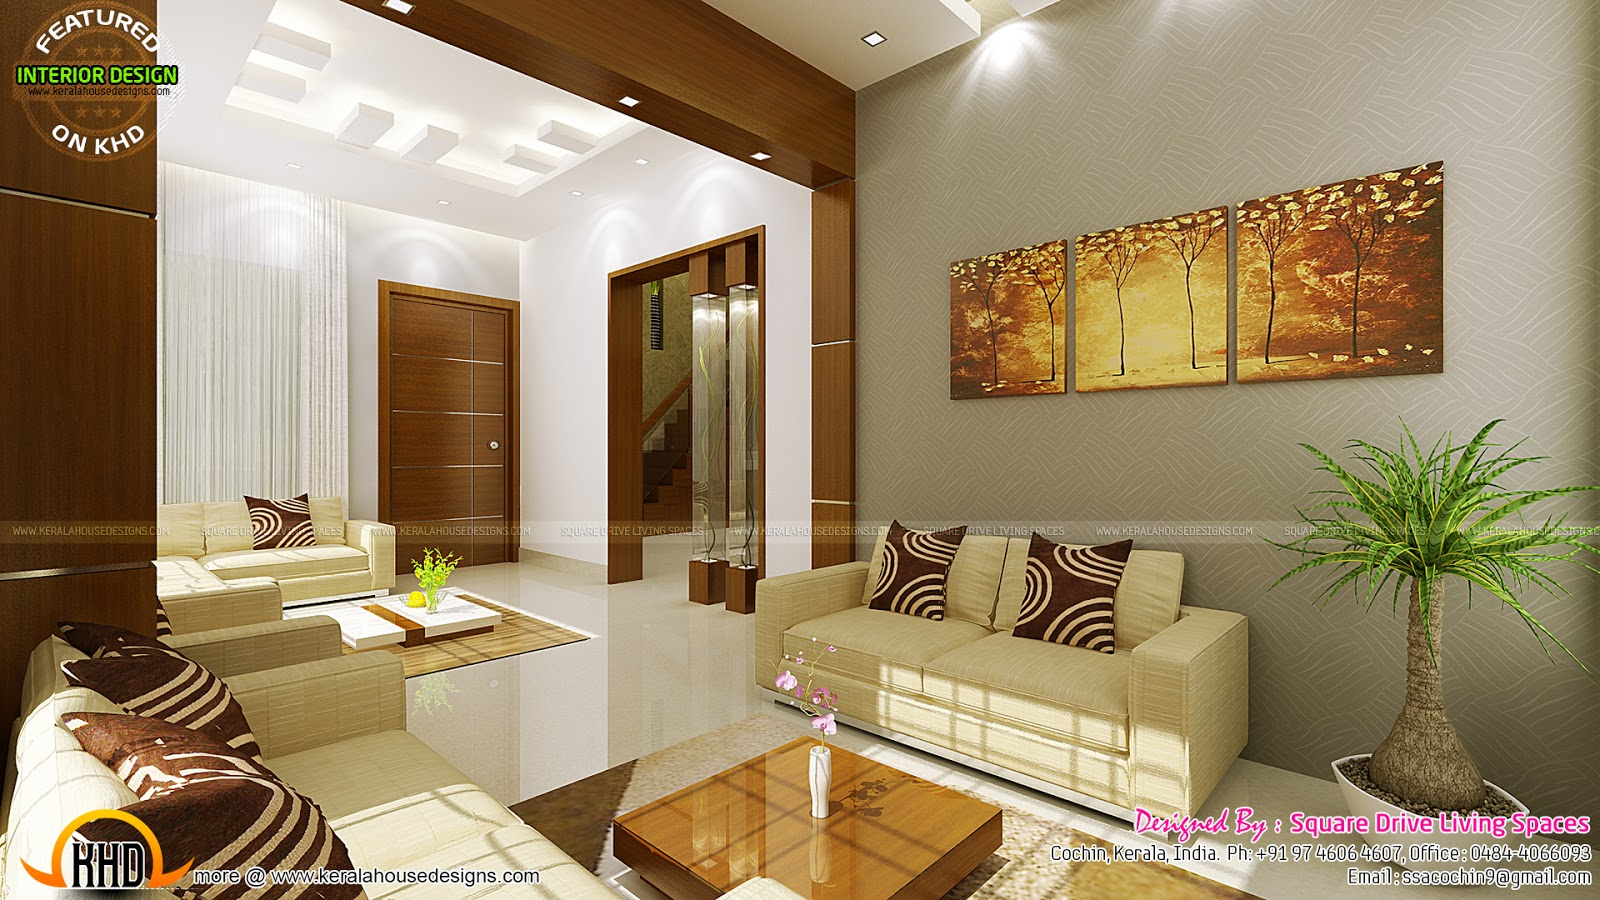 Contemporary kitchen dining and living room kerala home Contemporary interior design